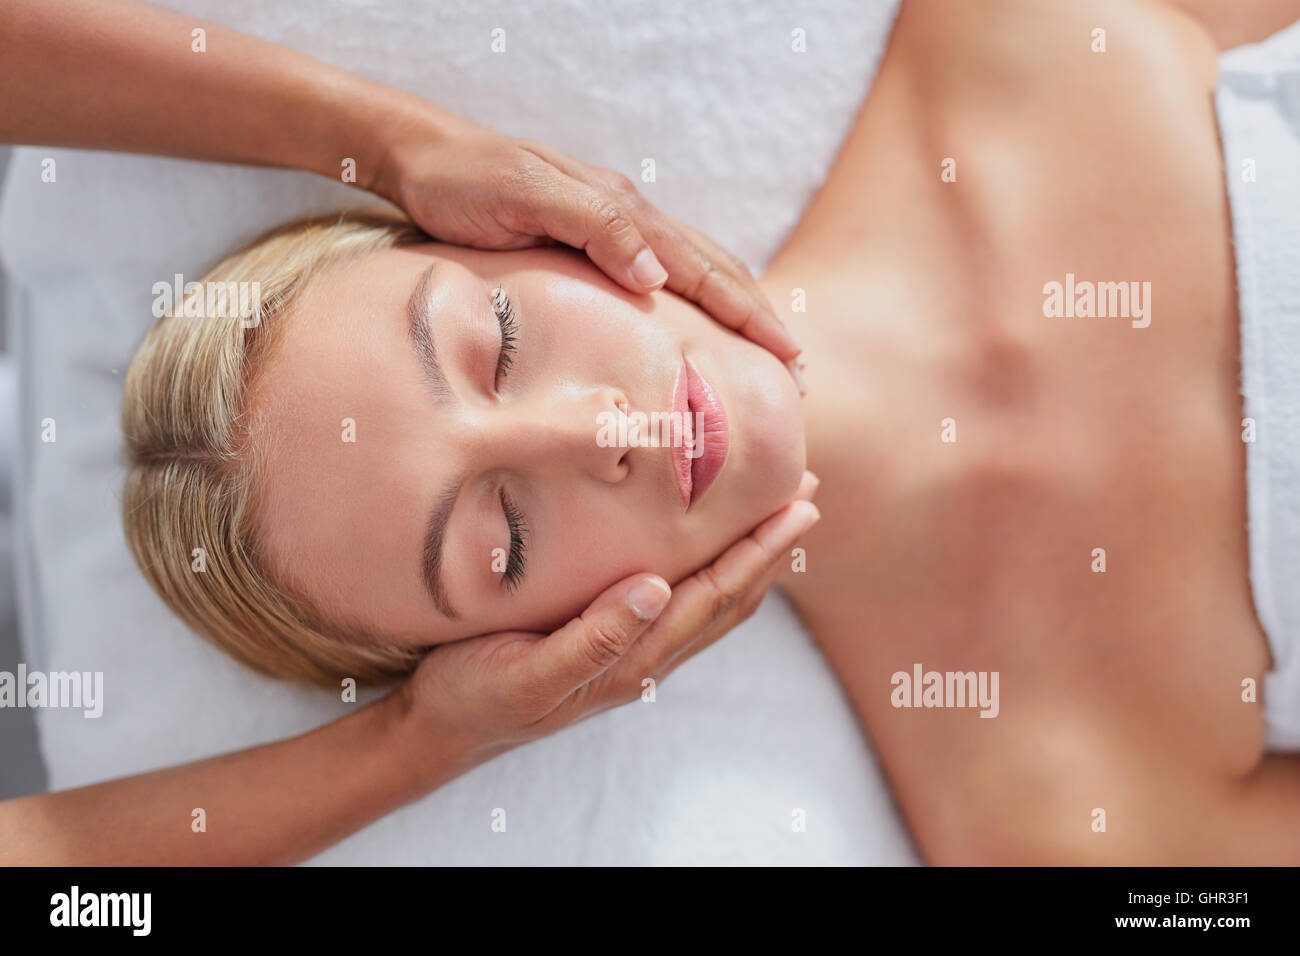 Top view shot of a beautiful young woman getting a facial massage at a spa - Stock Image